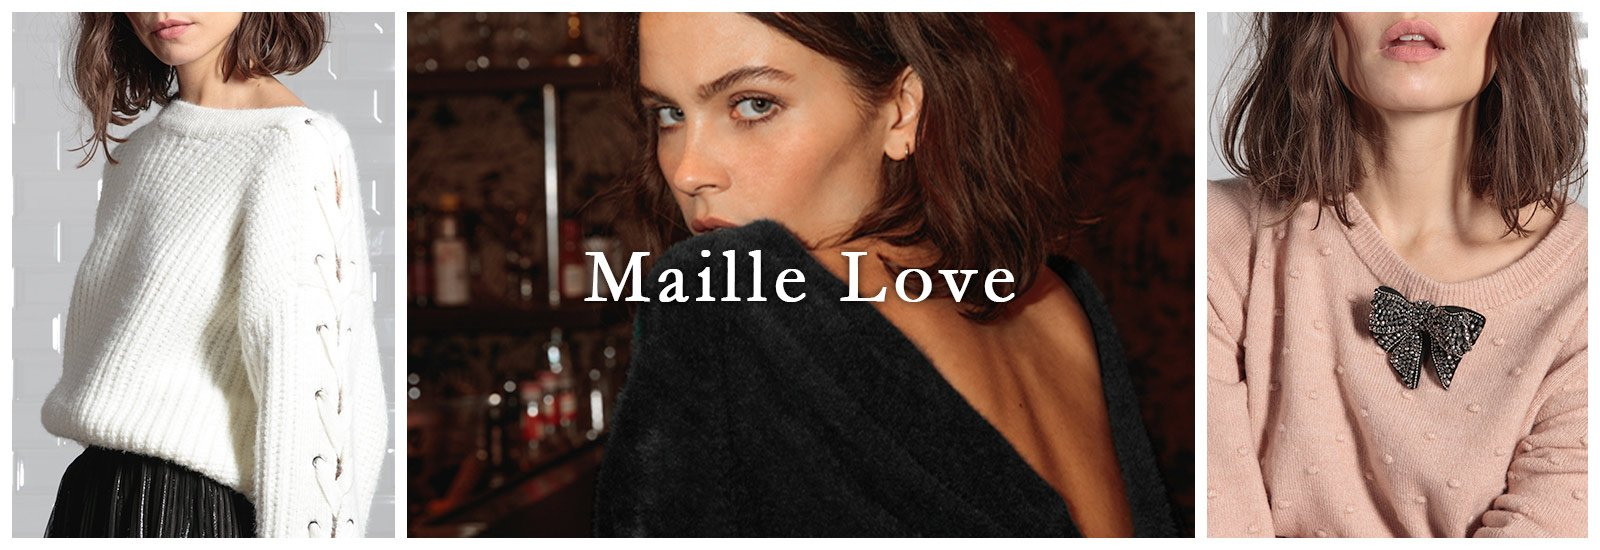 Maille Love